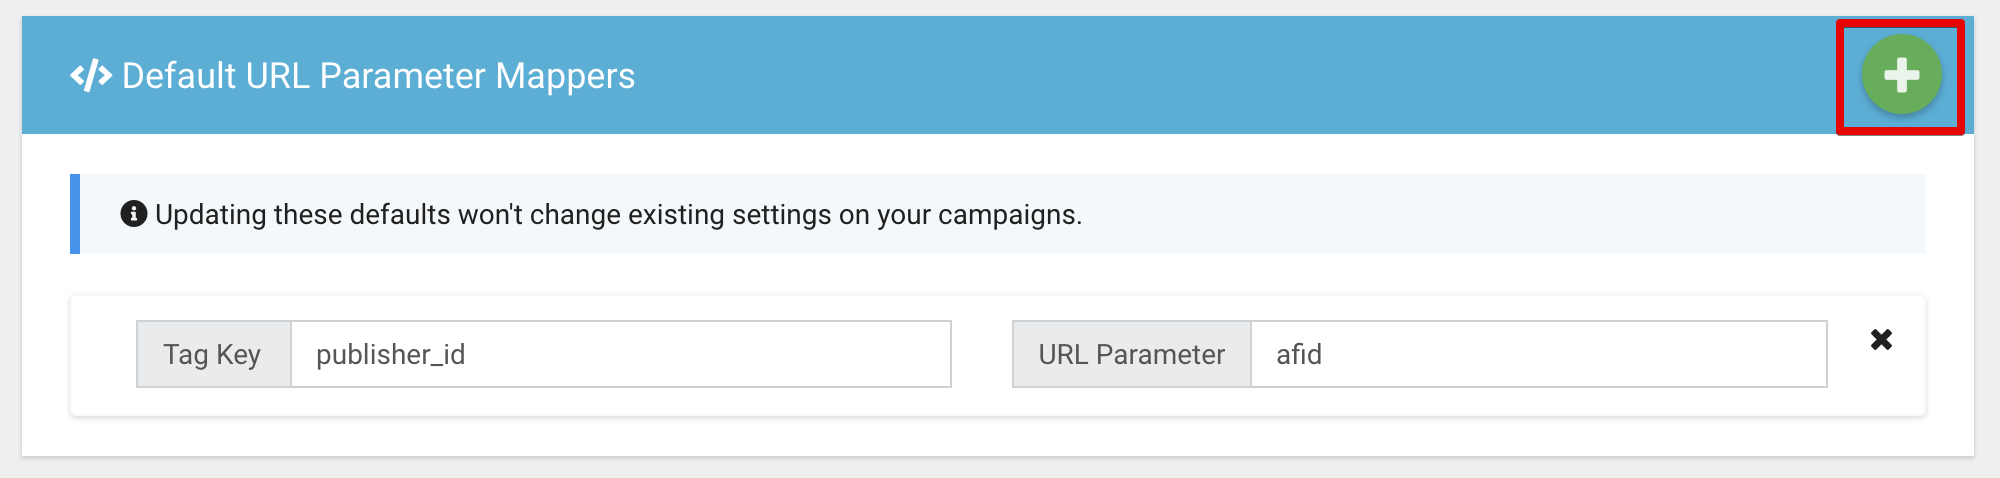 Managing company default parameter mapping settings.